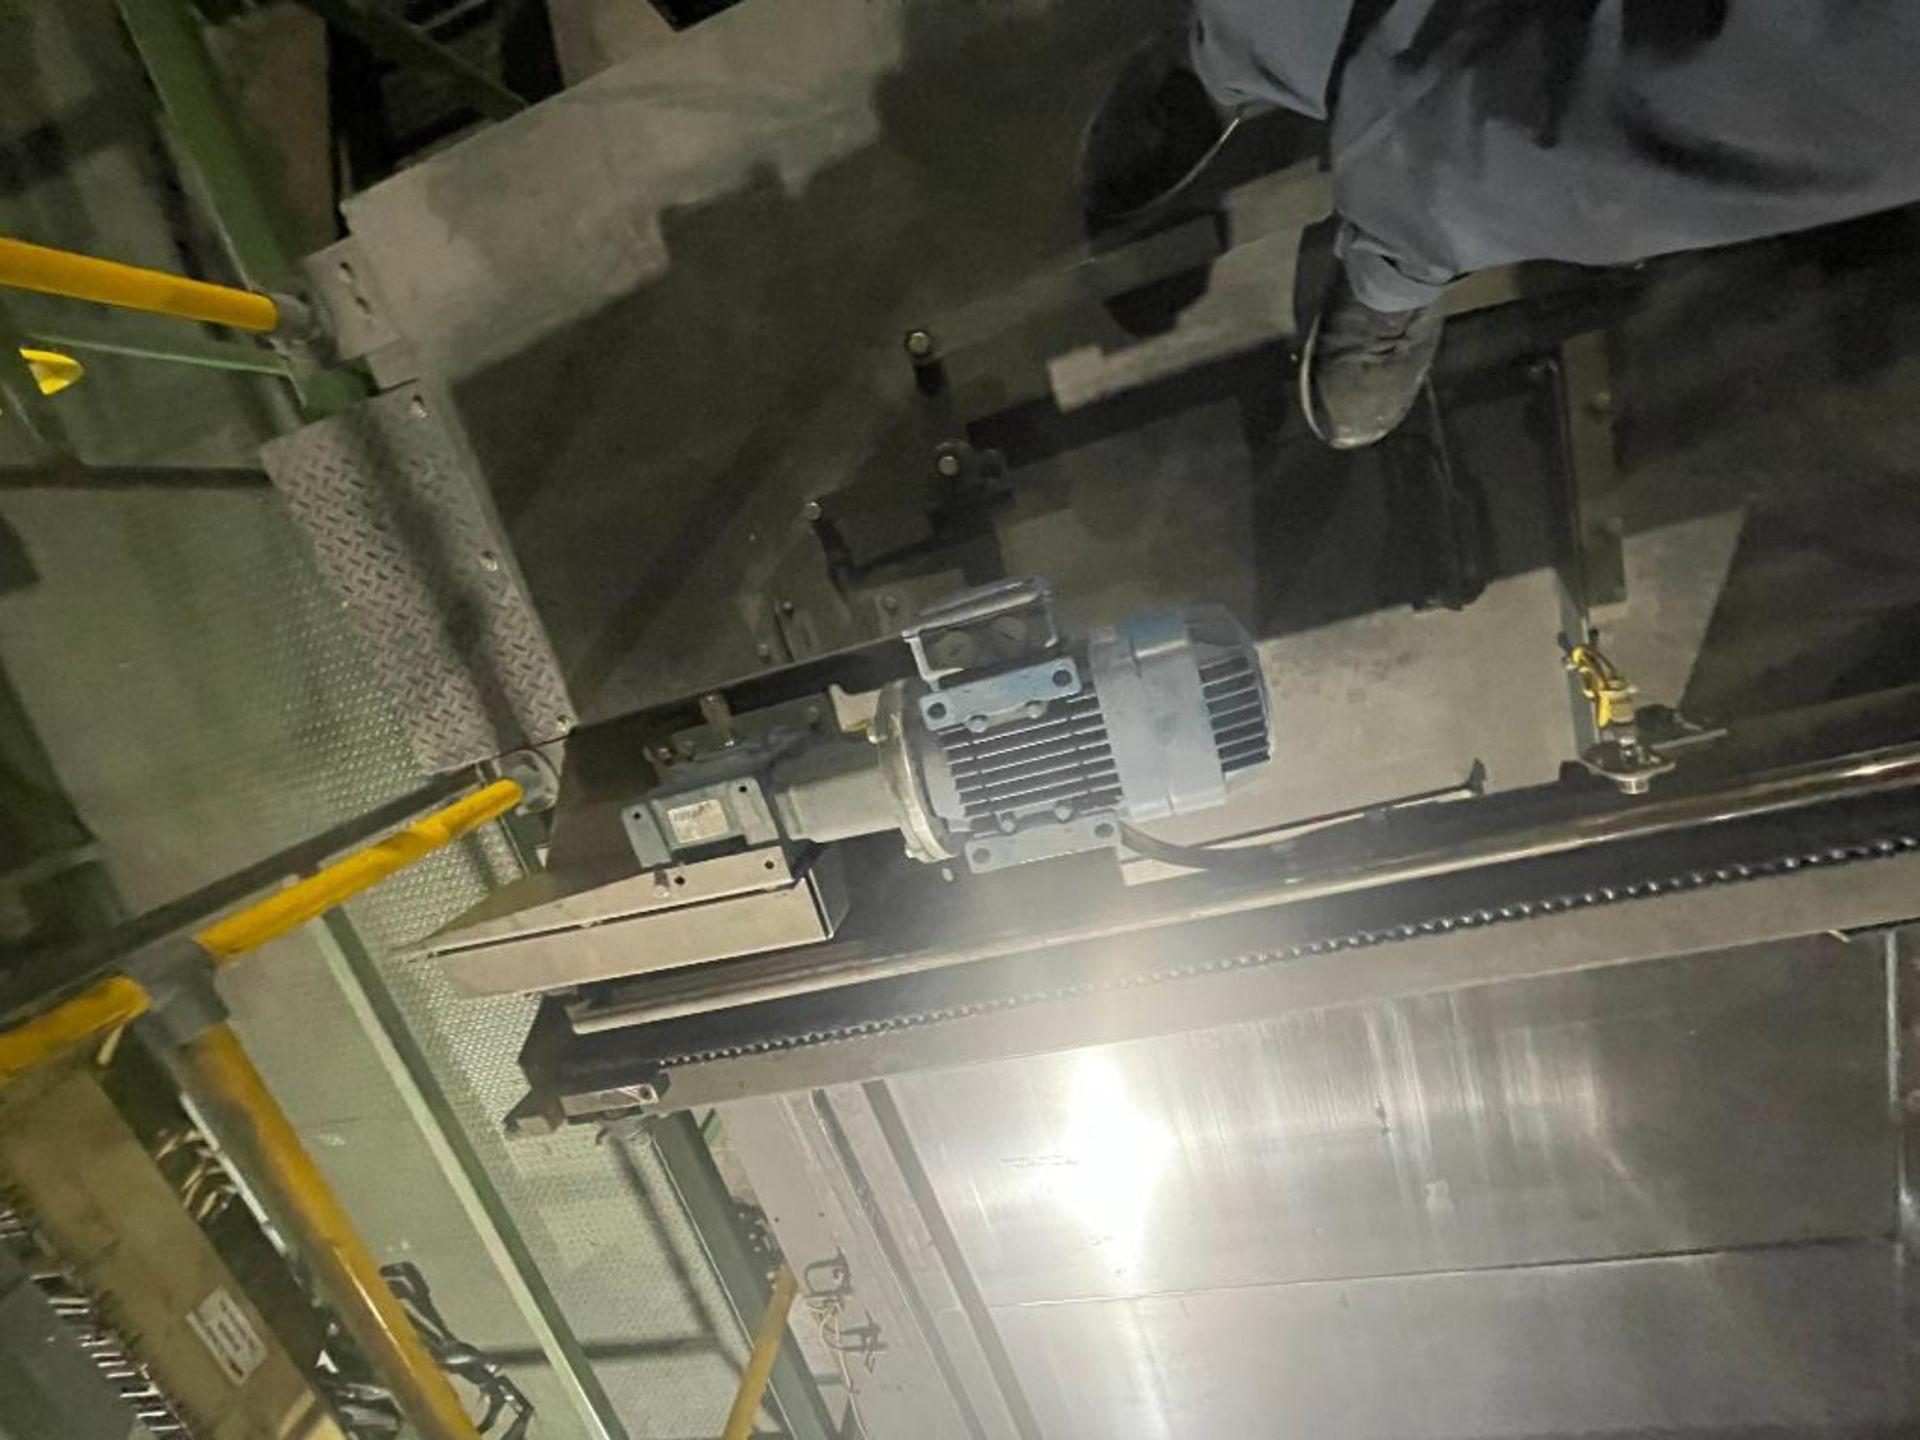 2008 Currie top to bottom palletizer, model PALLETIZER, sn 3348 - Image 22 of 28